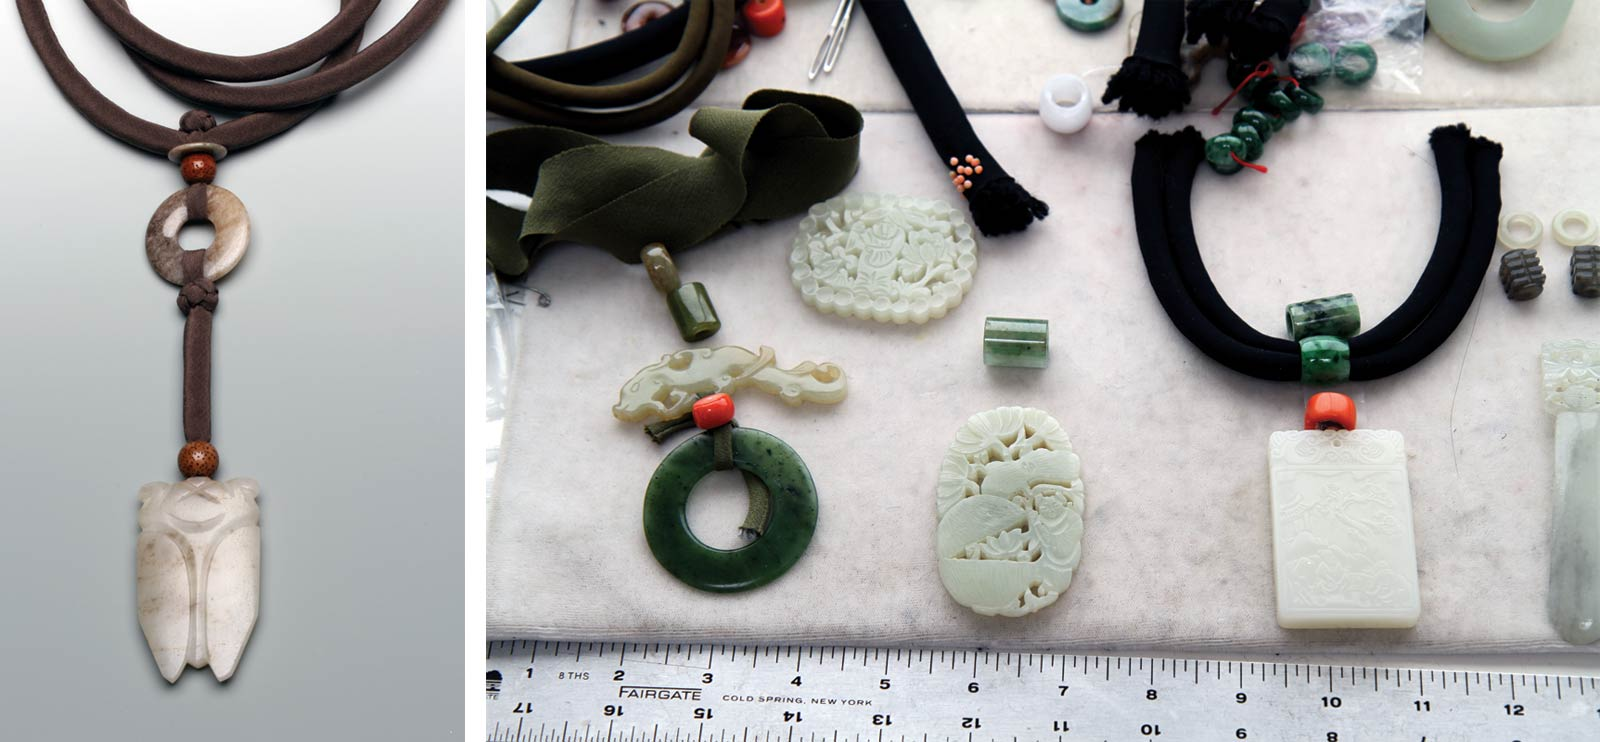 PAT TSENG NECKLACE PENDANT of small jade disk, larger  bi  and jade cicada, with two beads made from seeds, assembled with dyed silk-wrapped cords and hand-tied Chinese knots; length of pendant to end of knot is 14.0 centimeters. Right-hand image shows three necklaces in process of being designed, of silk, jade and coral components (all usually antique).  Photographs by Robert K. Liu/Ornament.